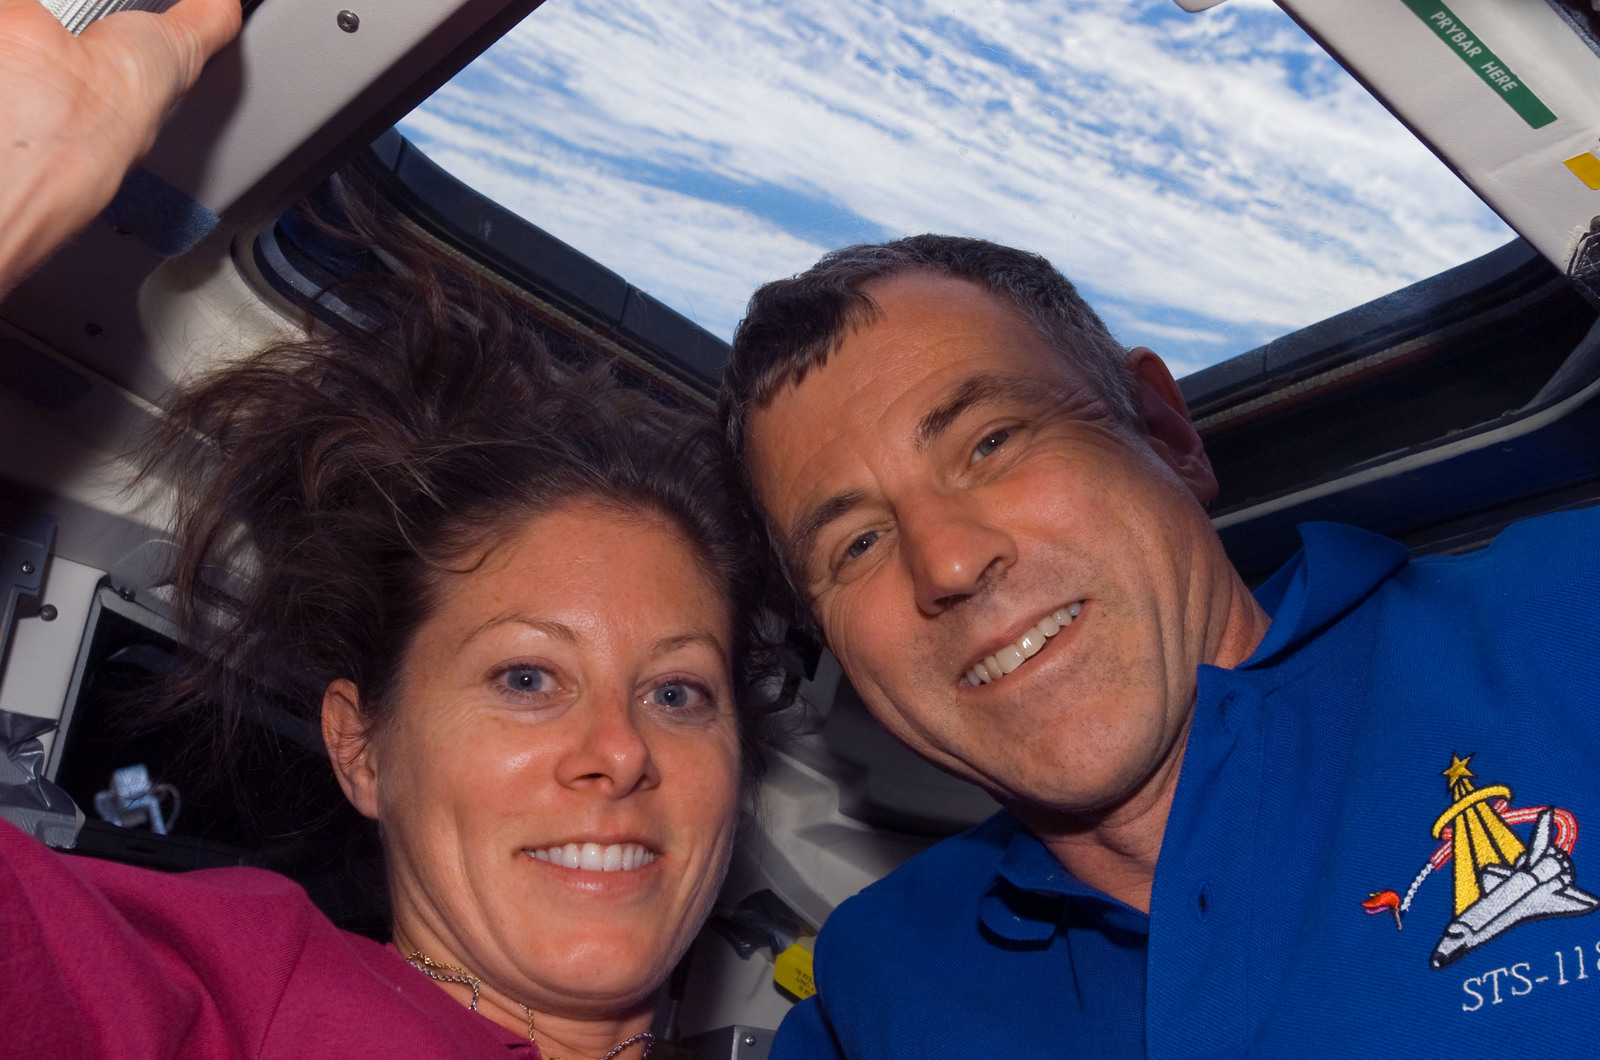 S118E05585 - STS-118 - View of Caldwell and Williams posing for a photo in the FD during STS-118